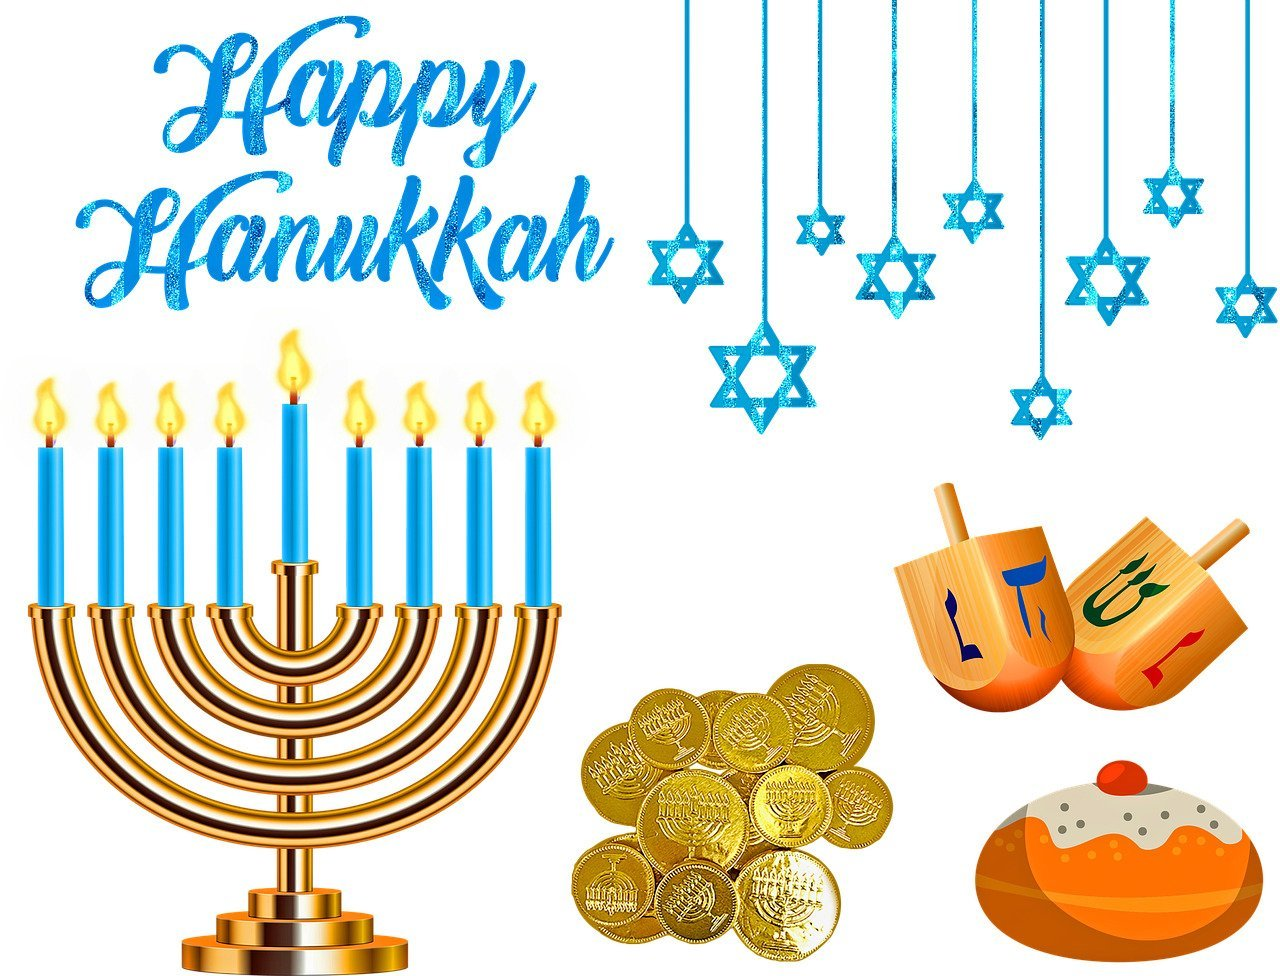 Hanukkah, The Jewish Festival Of Lights, Begins On December 22! Kids News Article